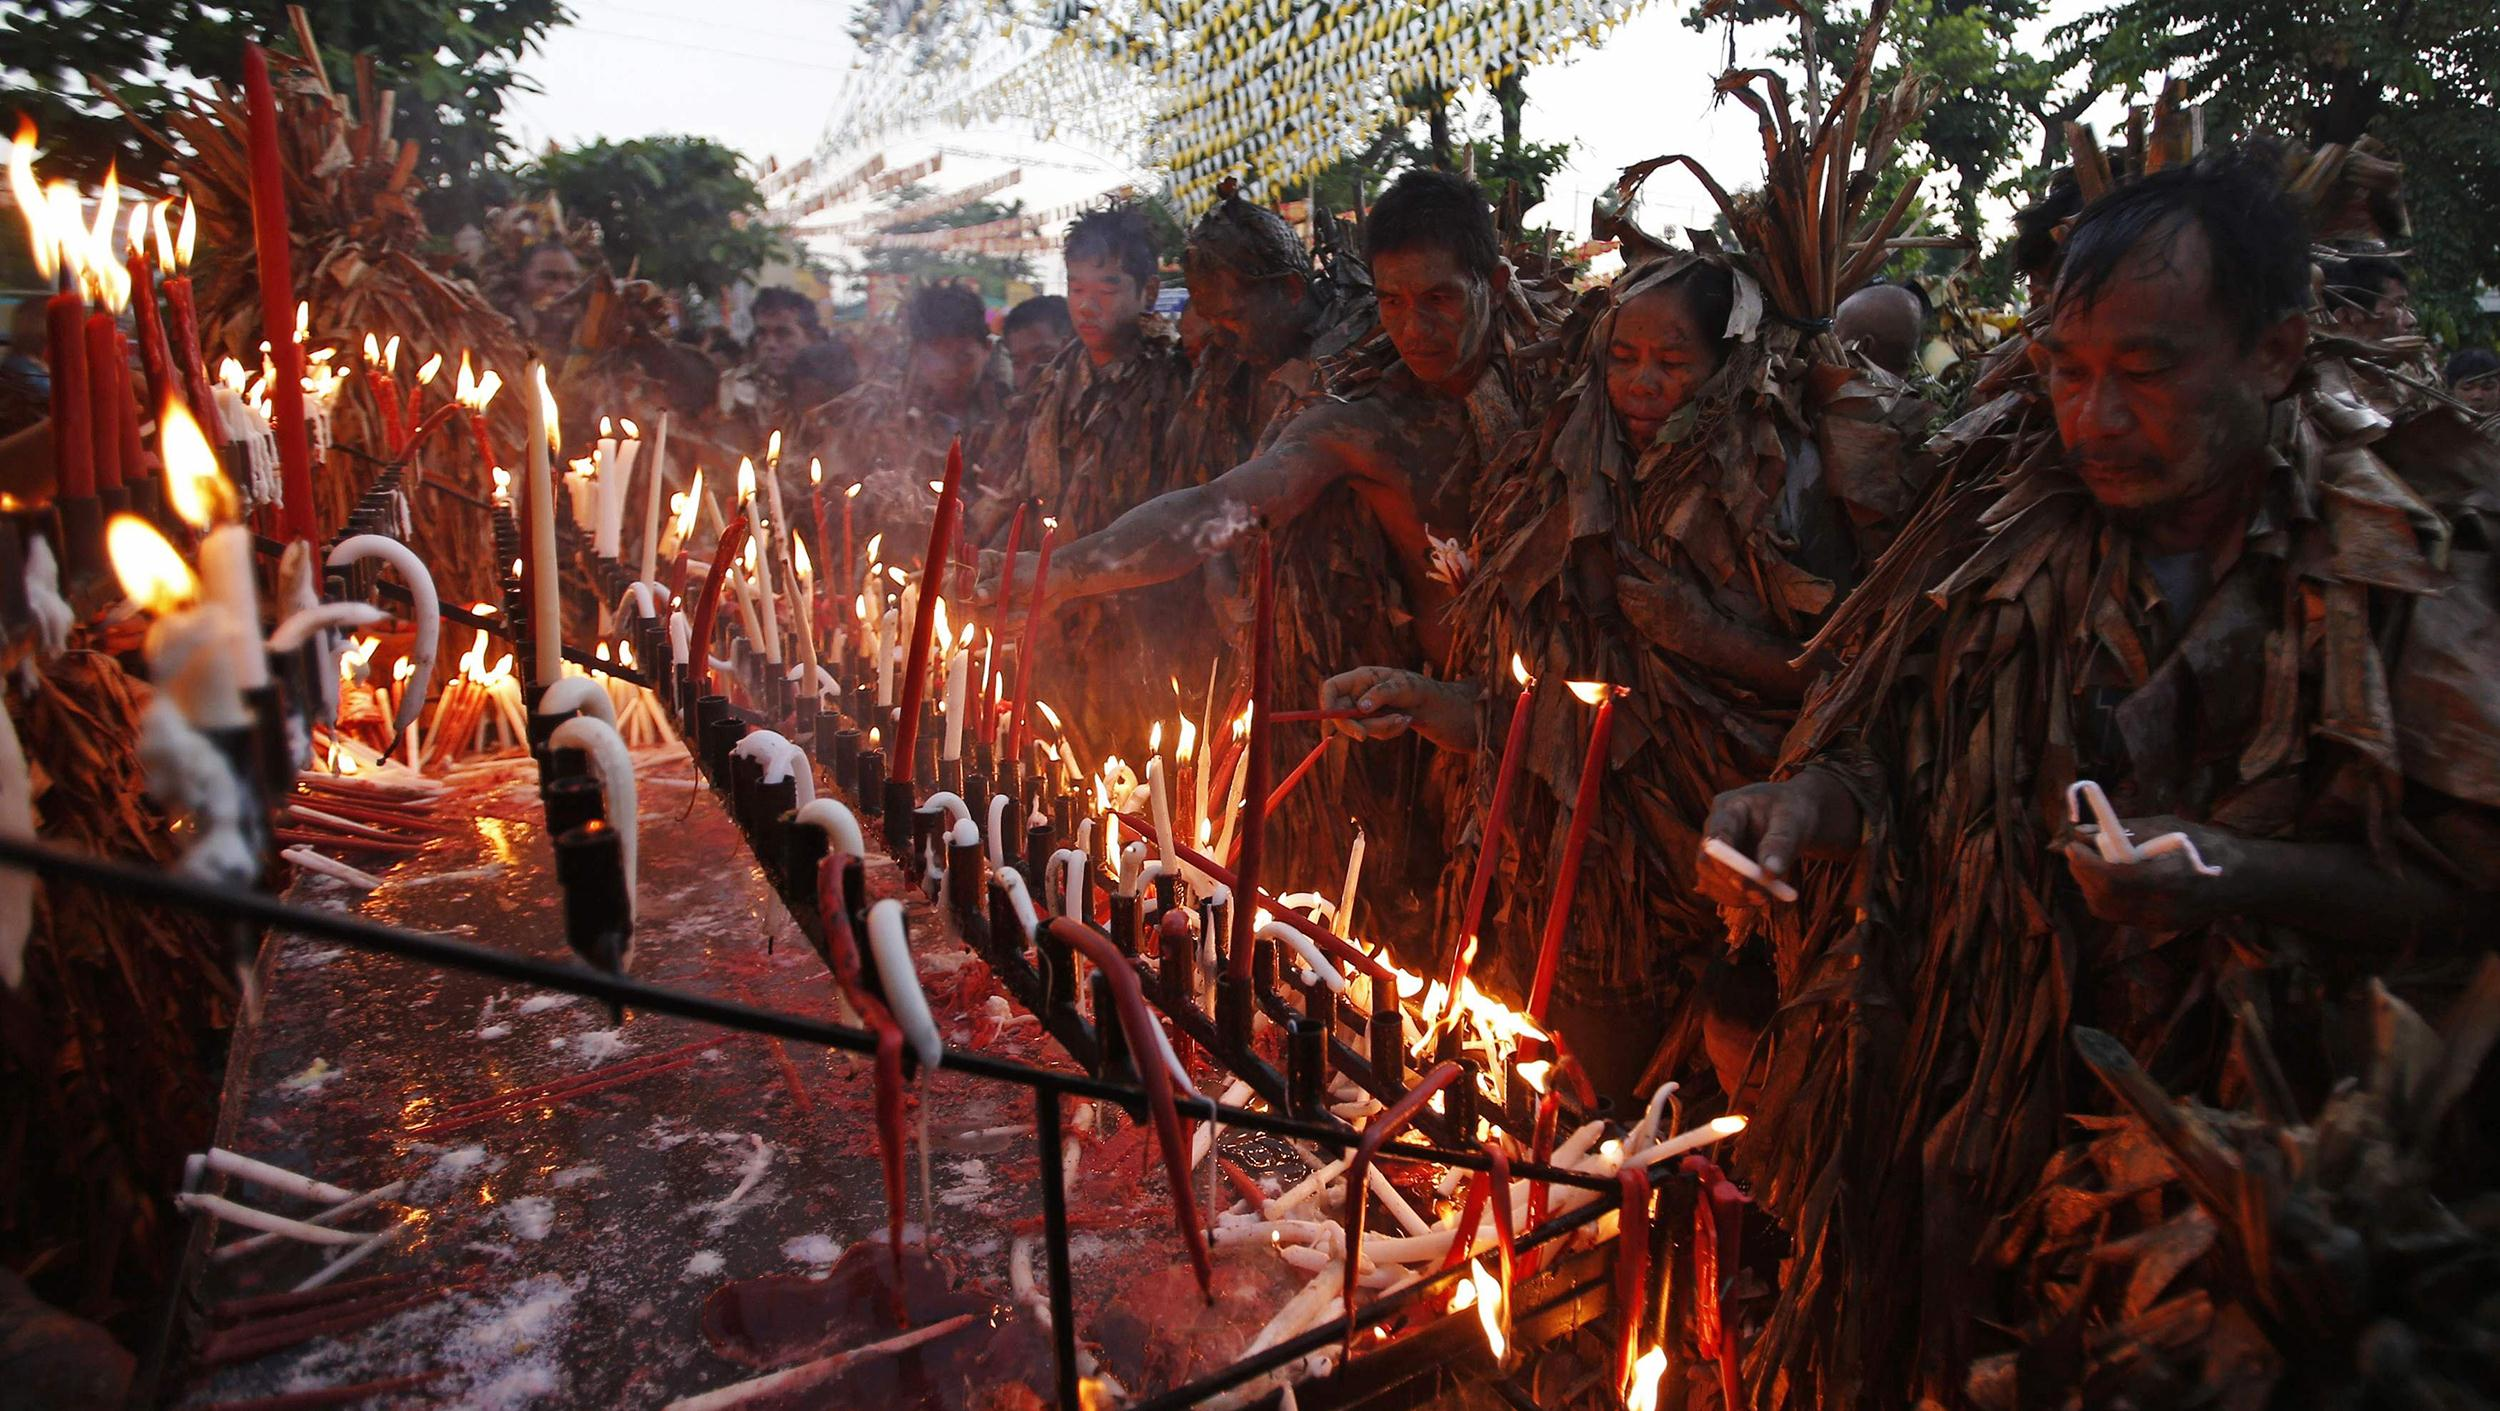 Image: Residents, covered with dried banana leaves and mud, light candles as they take part in a religious ritual known locally as